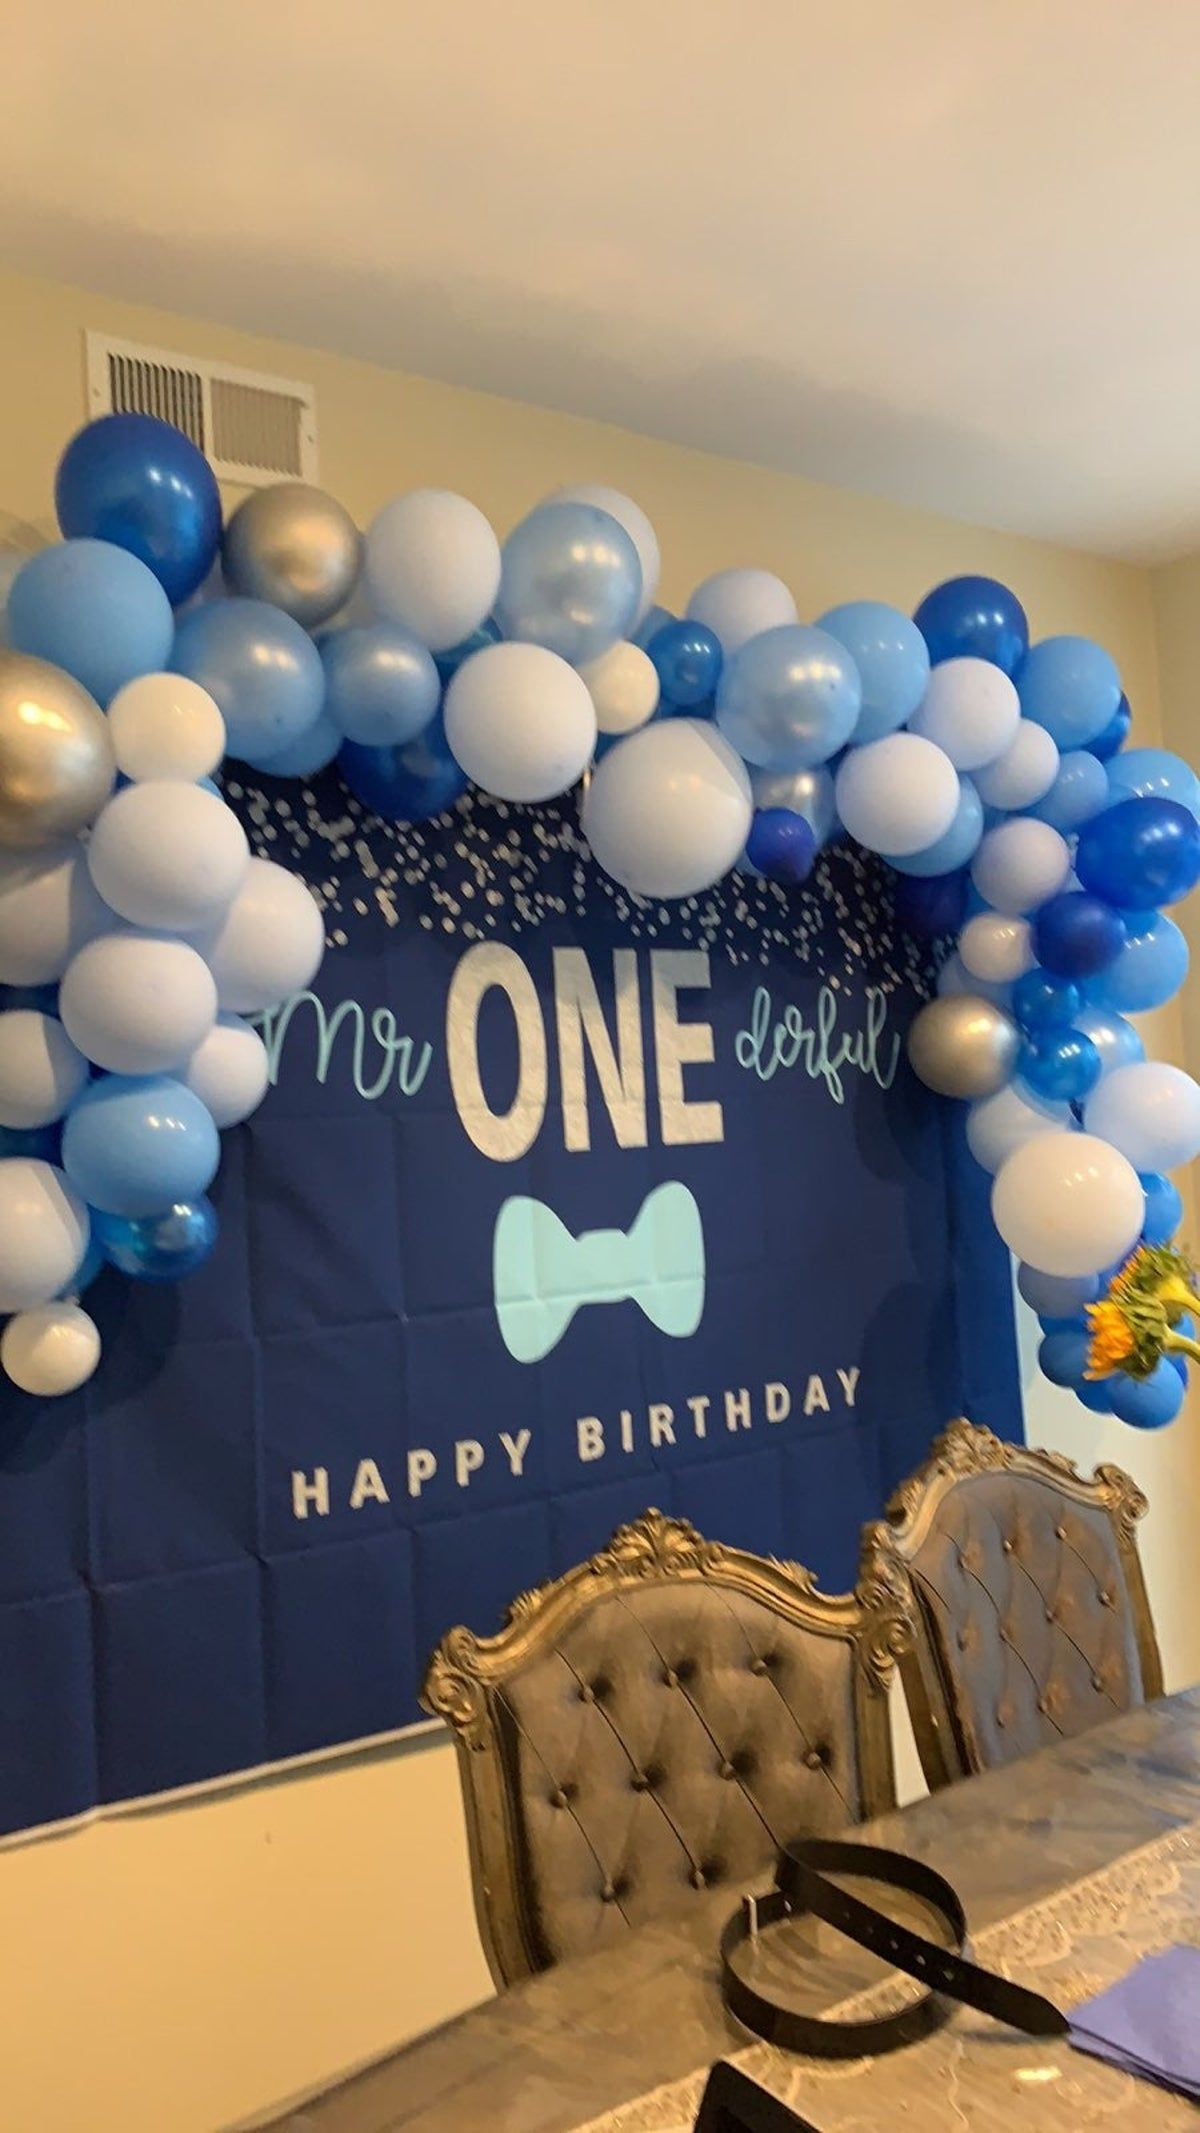 Me Onederful Baby Backdrop in 2020 Mr onederful birthday